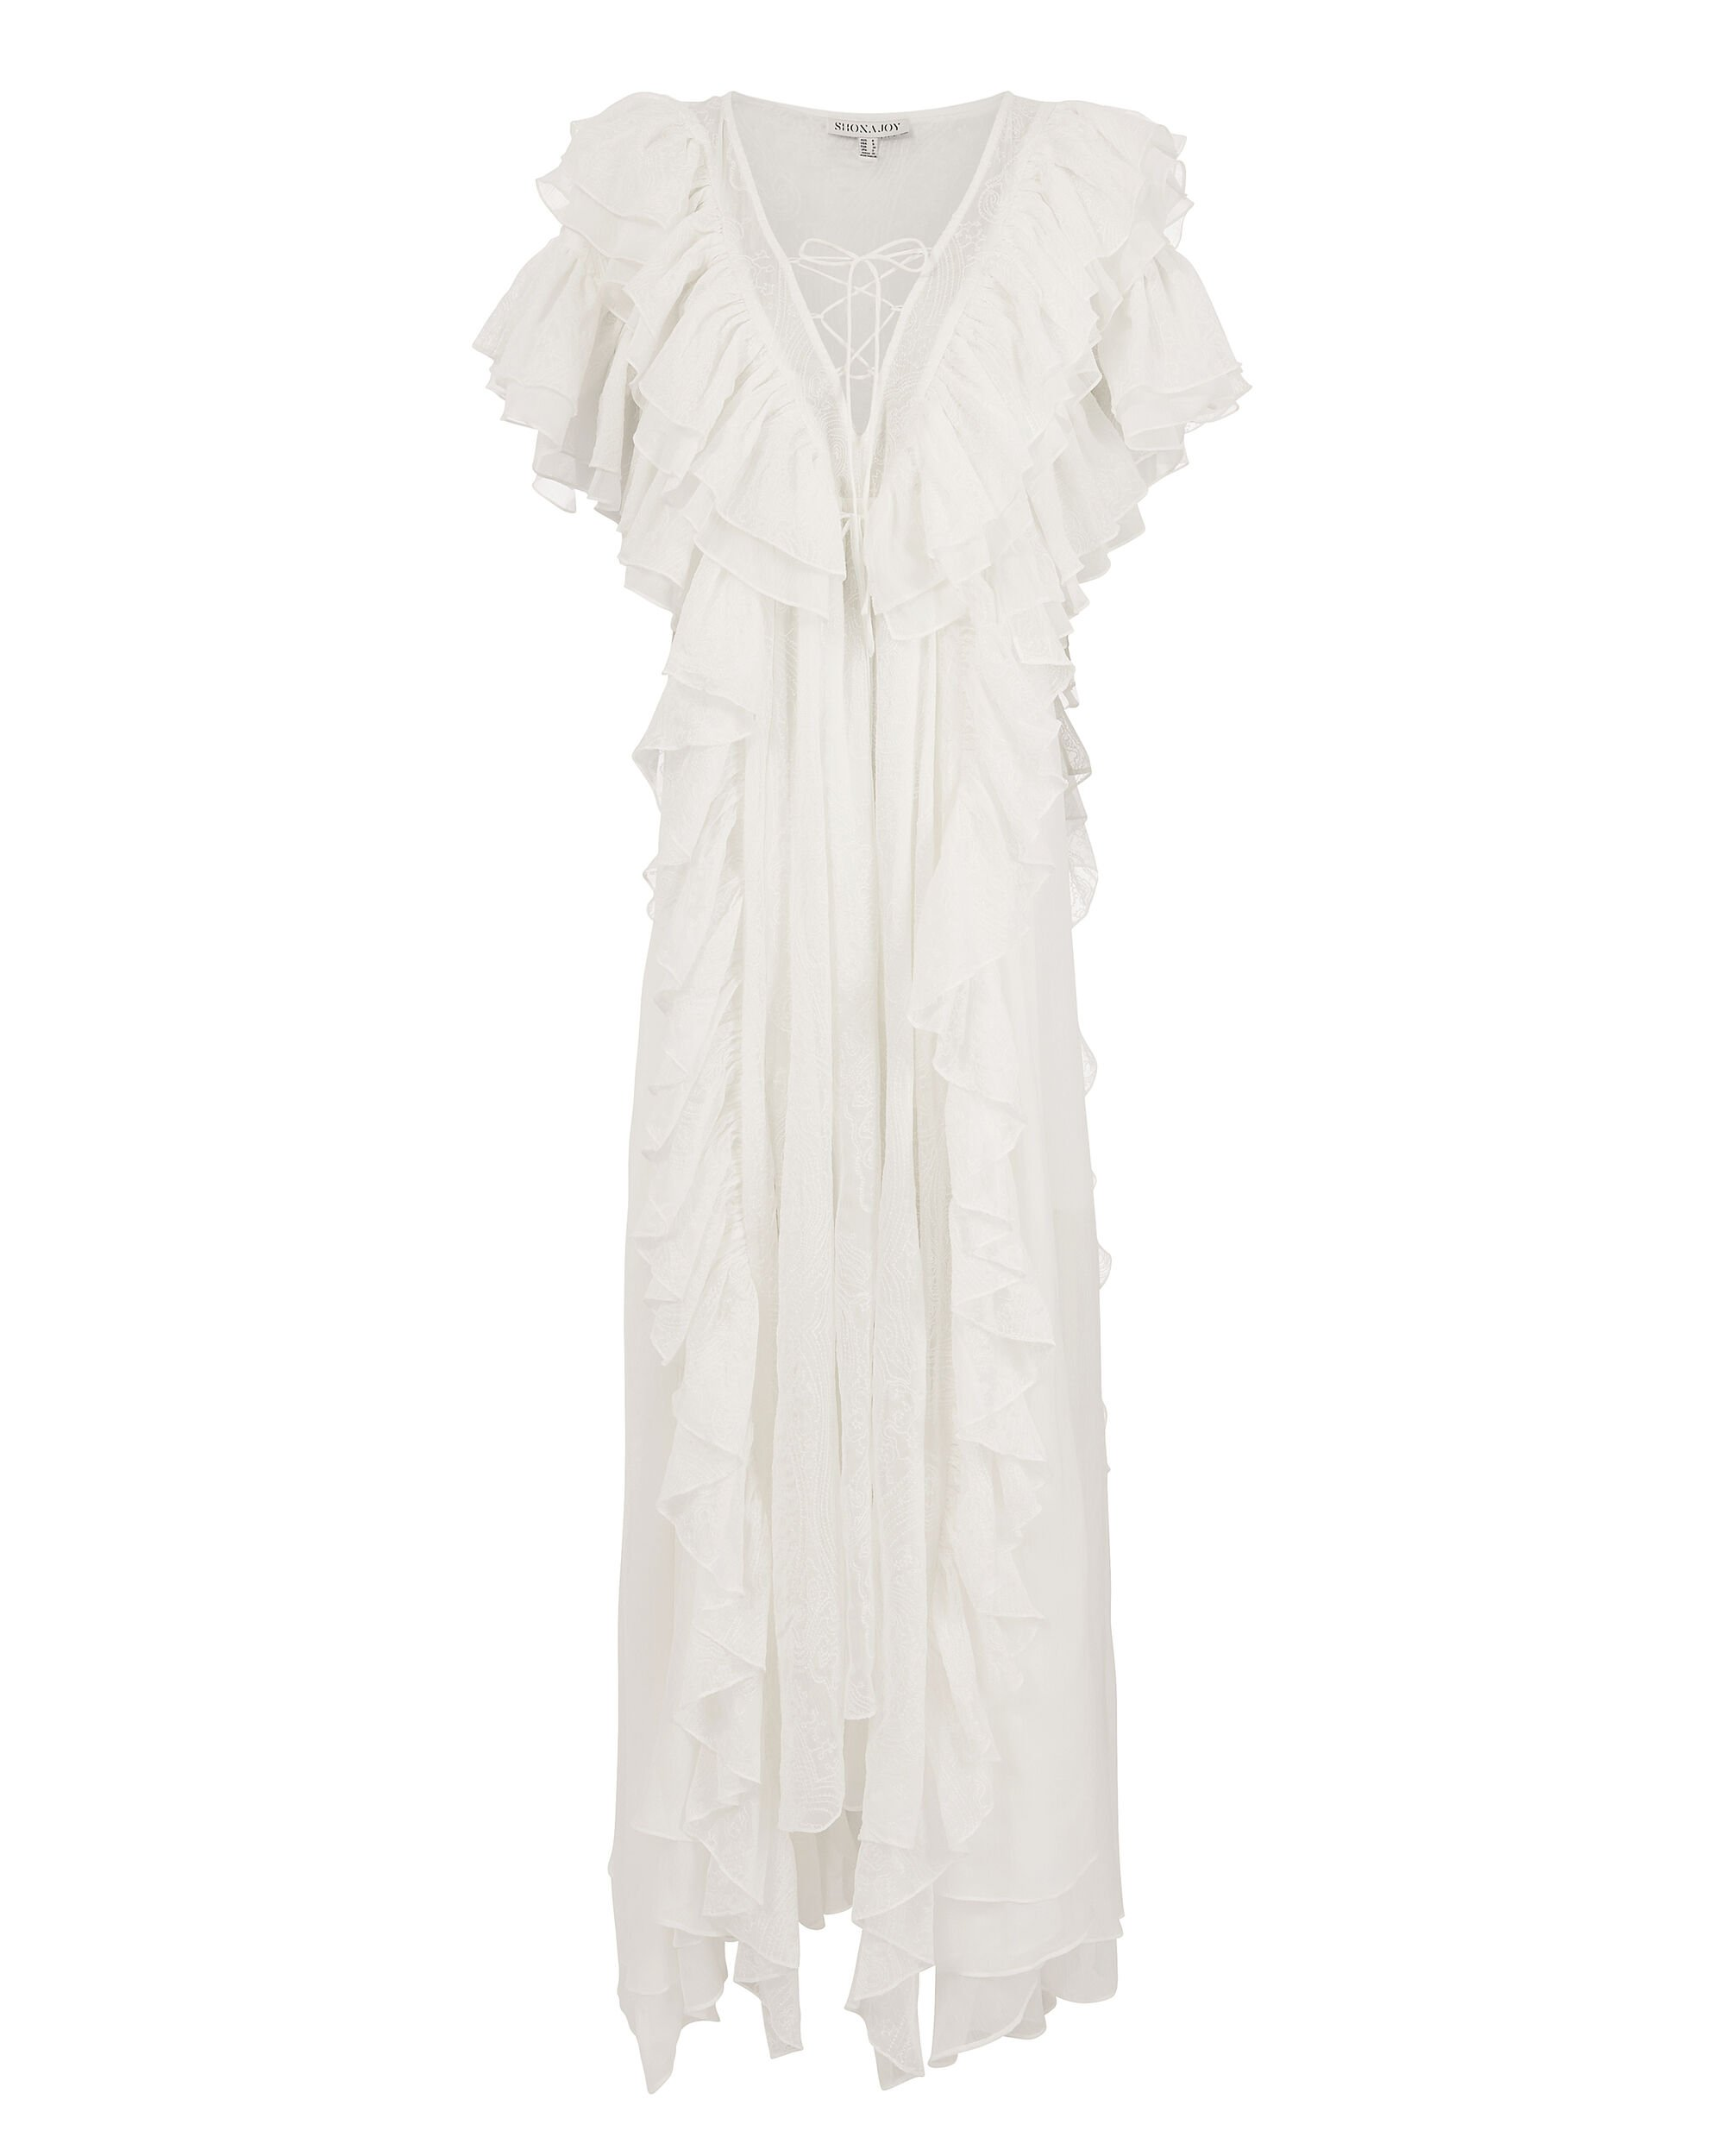 Uccello Dress, IVORY, hi-res